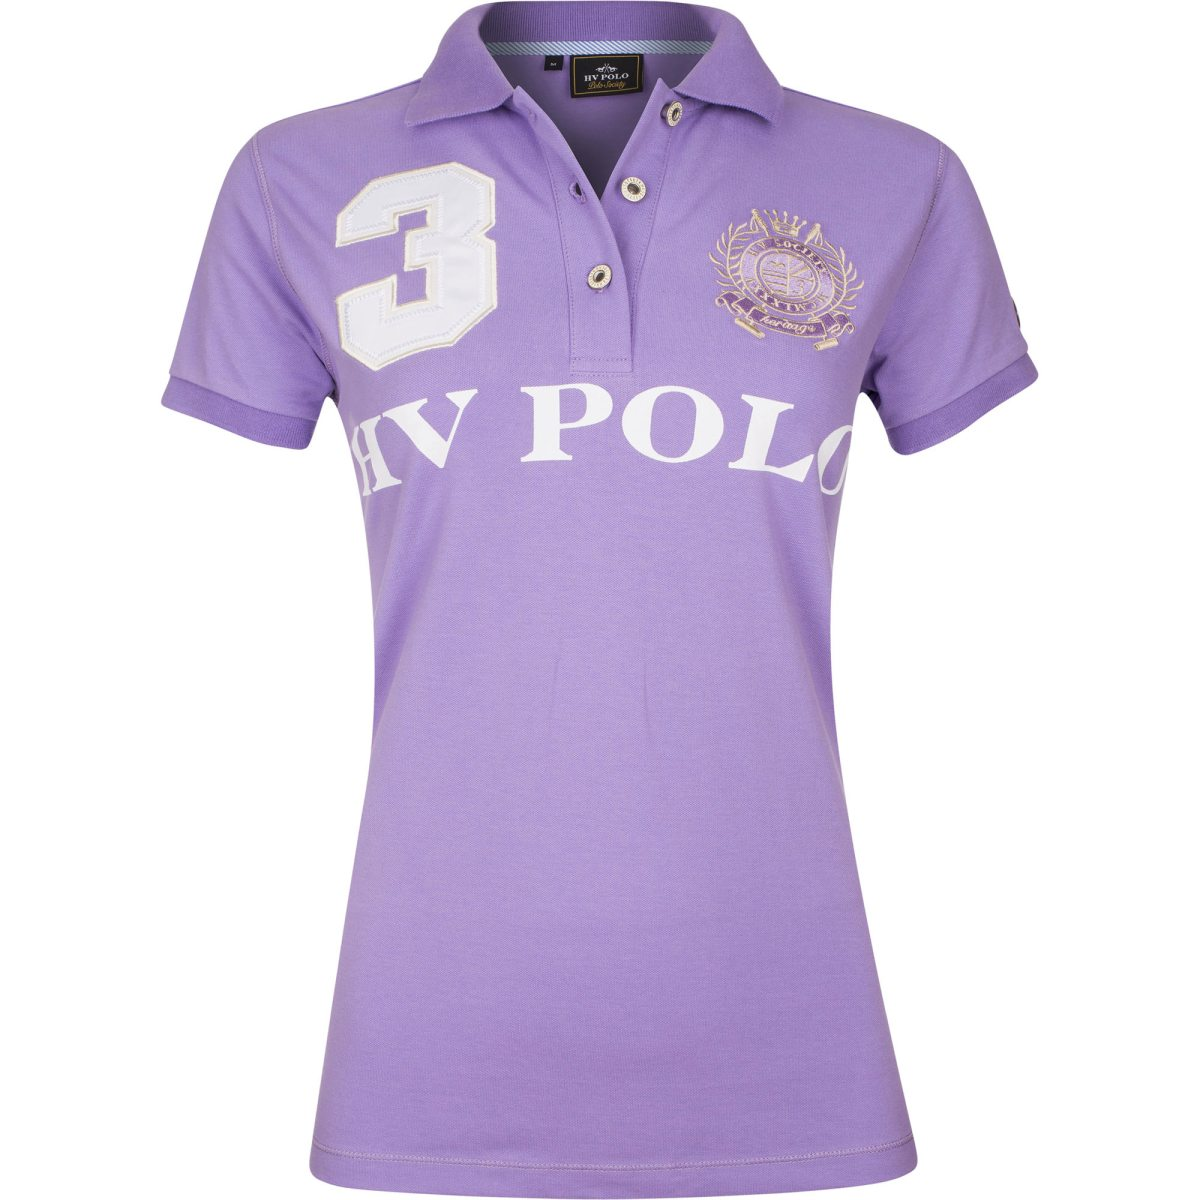 dadf7aa0 polo shirt available via PricePi.com. Shop the entire internet at ...